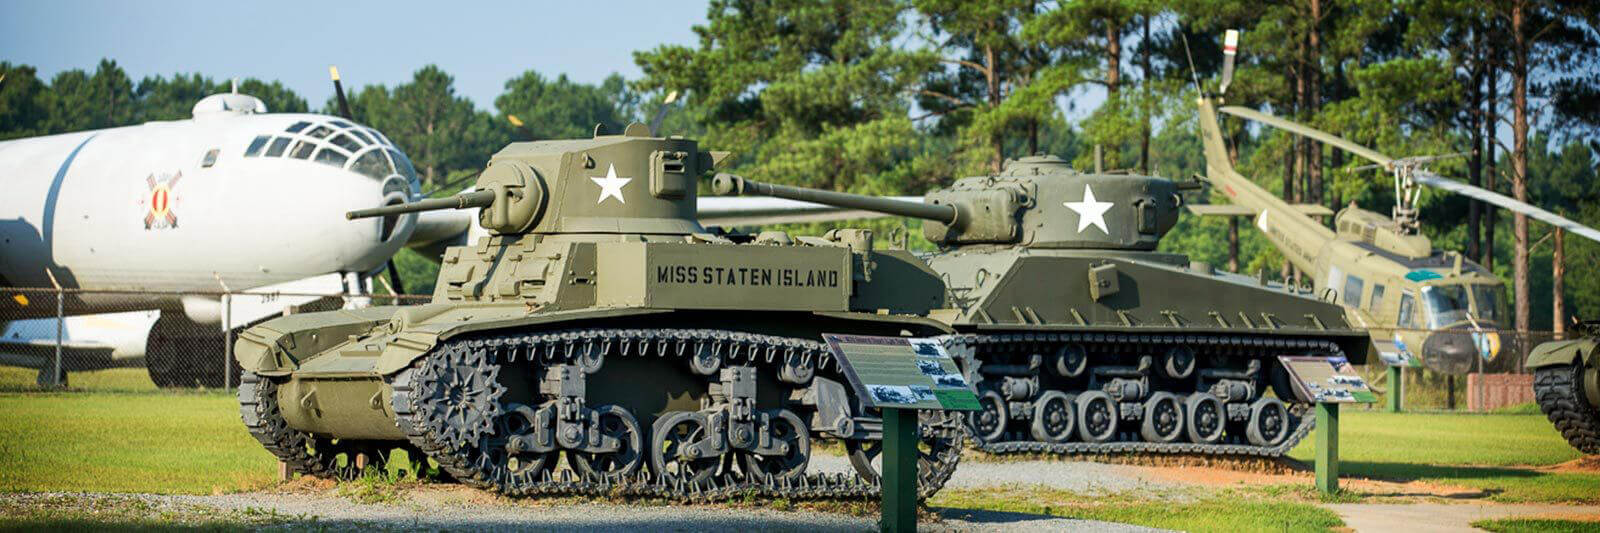 Lake Blackshear GA Veterans Military Museum